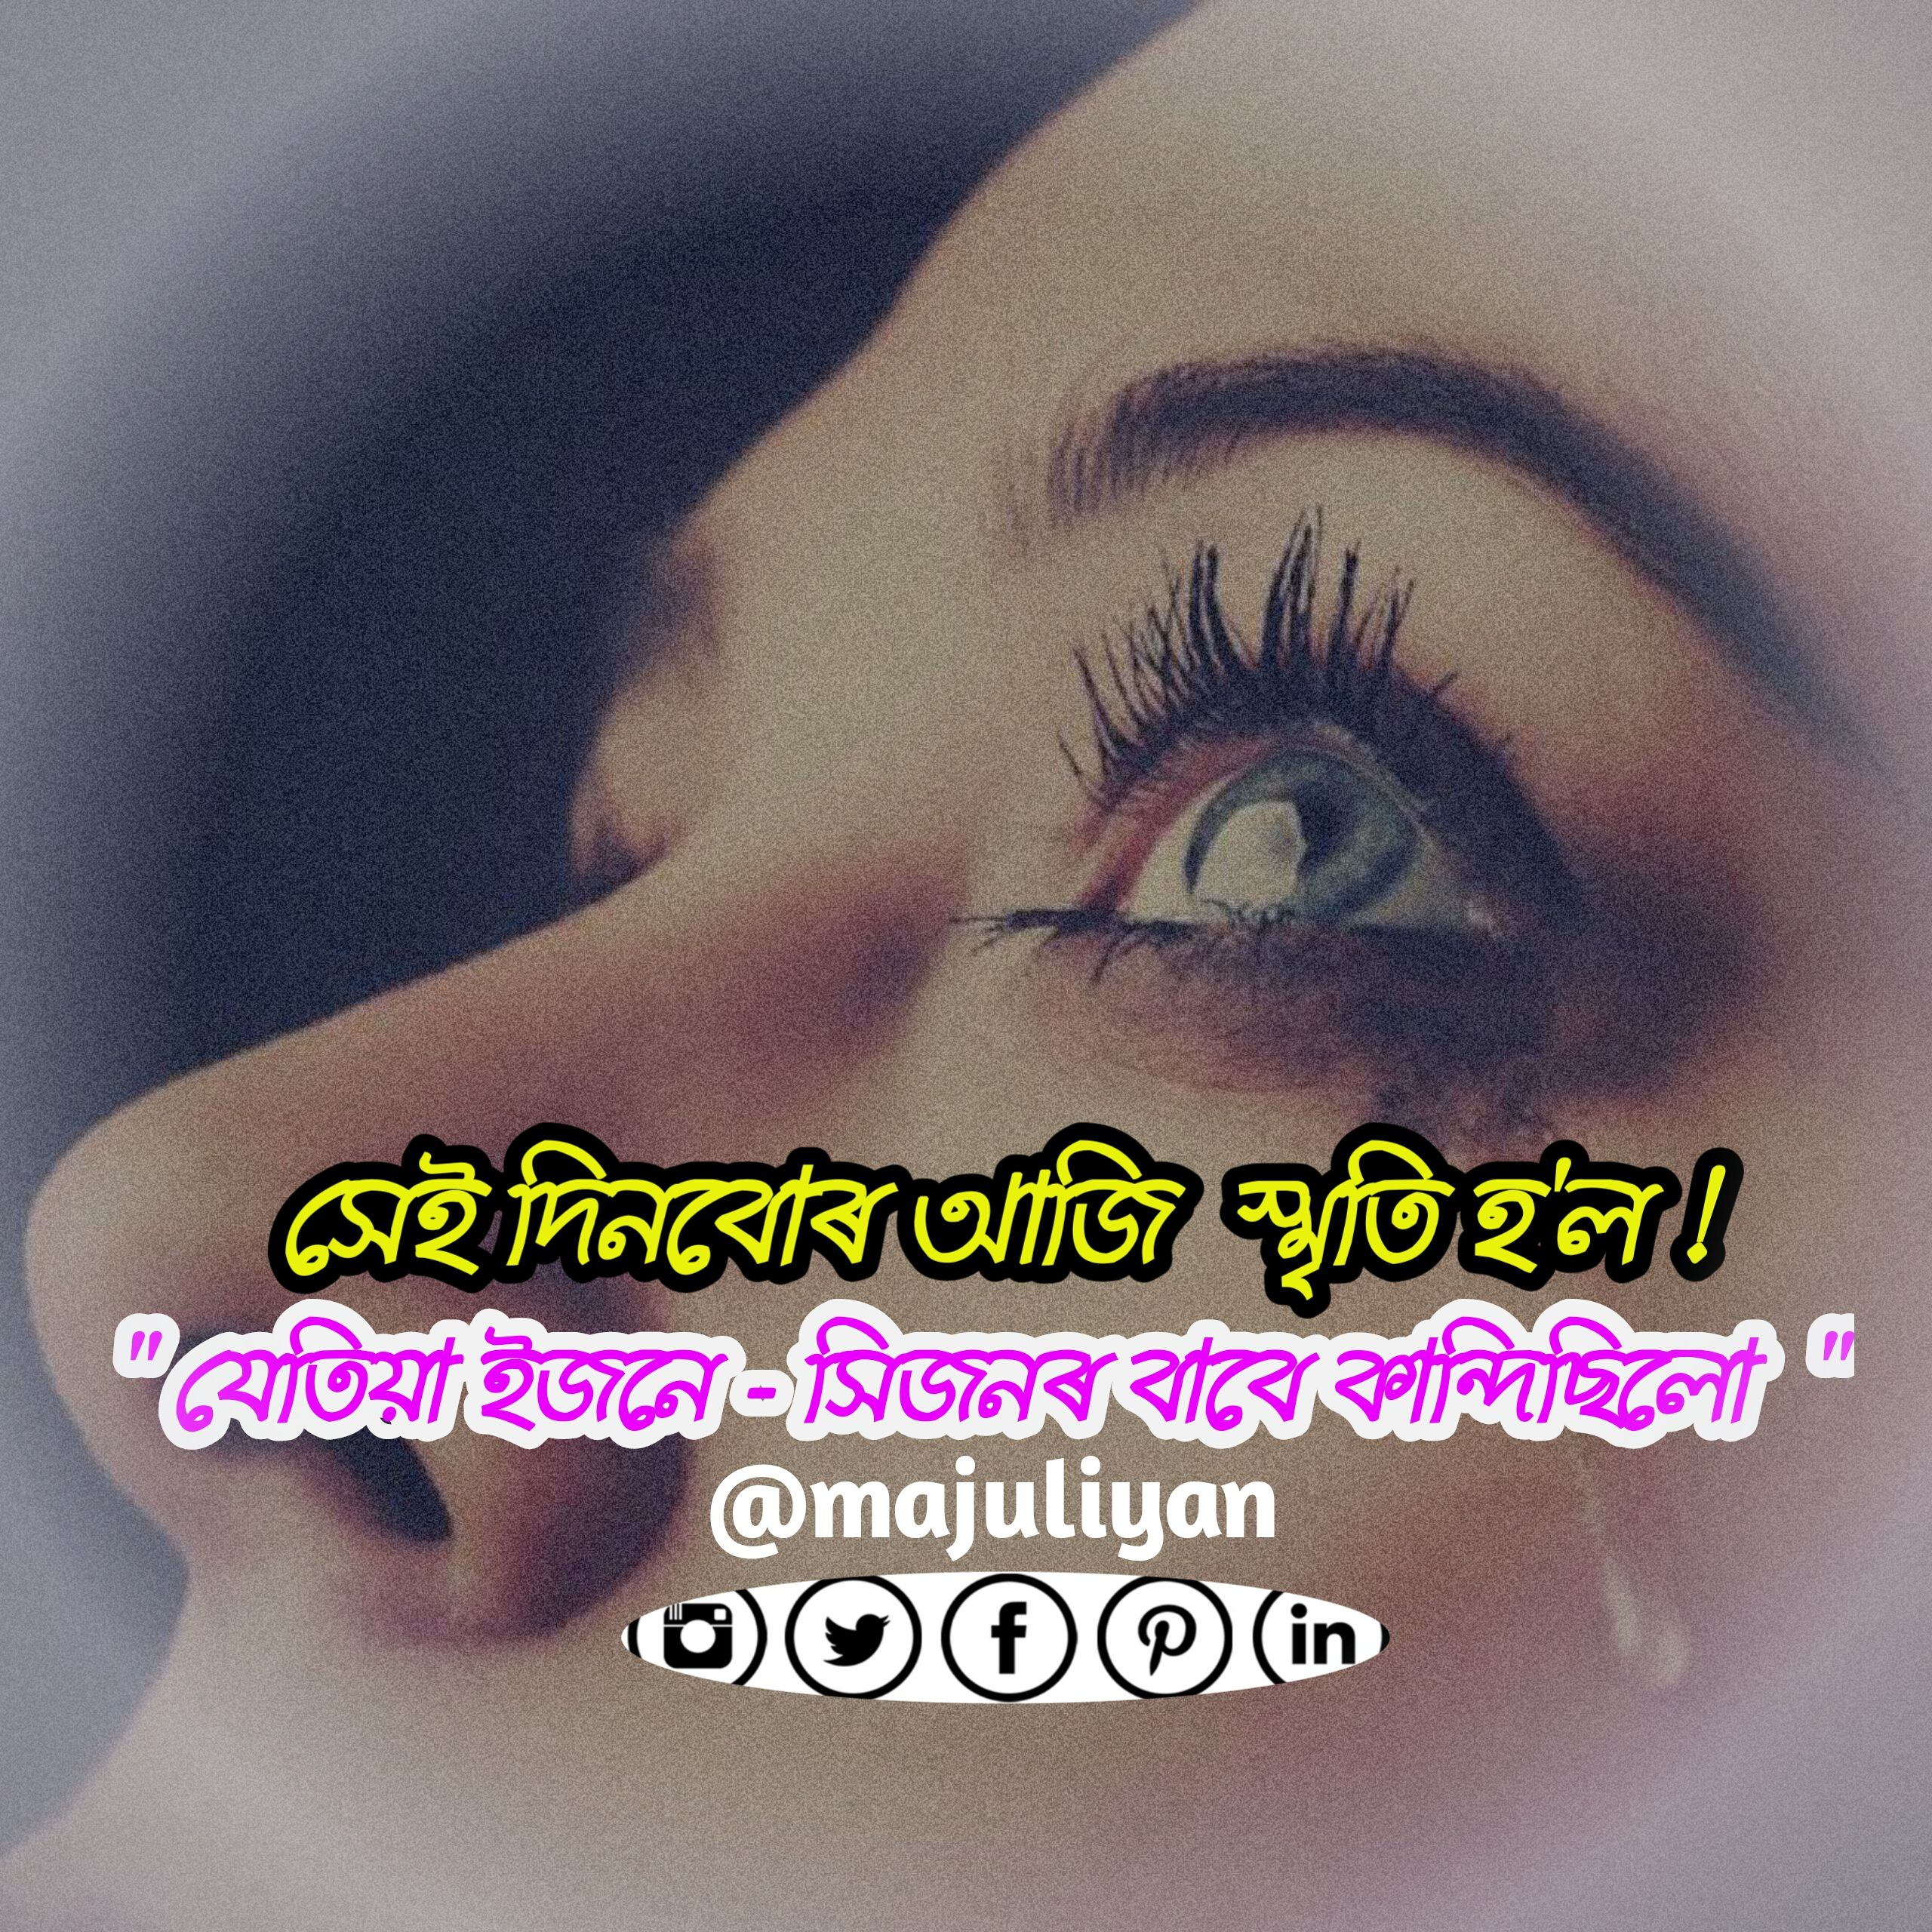 Assamese Love Quotes For Whatsapp And Facebok Love Quotes For Whatsapp Quotes For Whatsapp Love Quotes